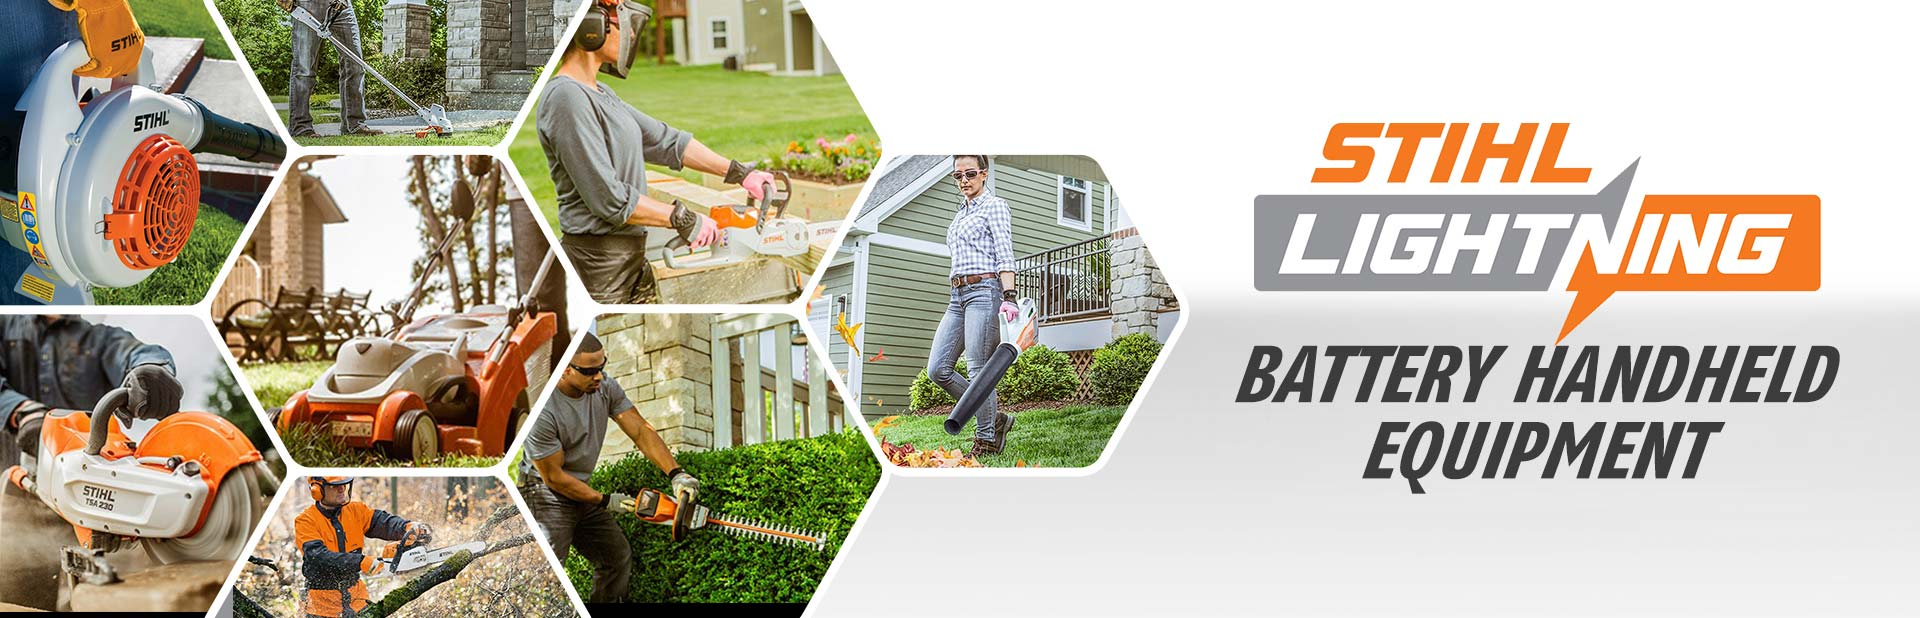 Chief Equipment offers STIHL lightening battery handheld equipment!